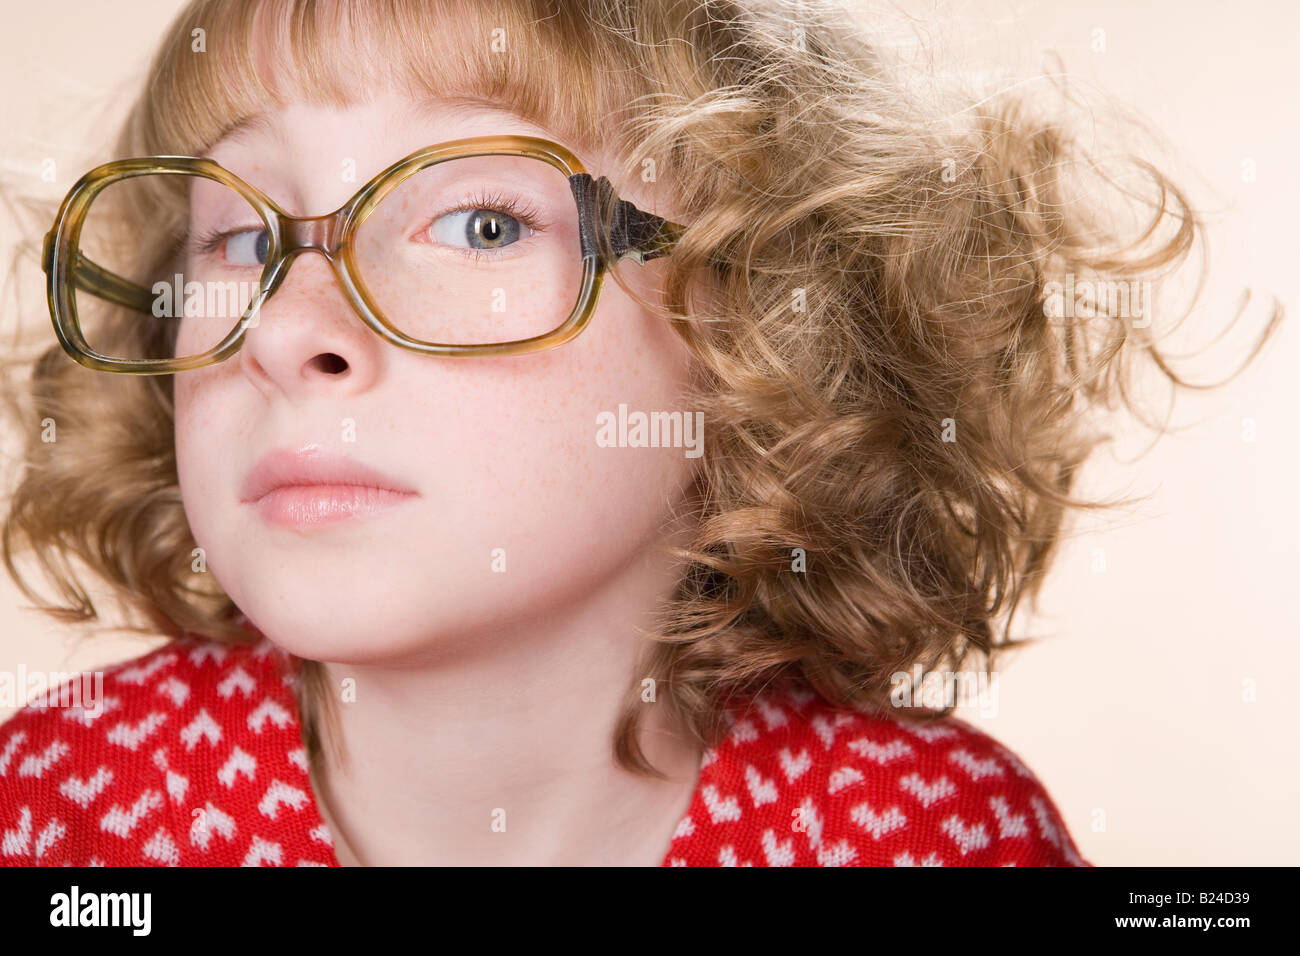 Portrait of a geeky girl Stock Photo